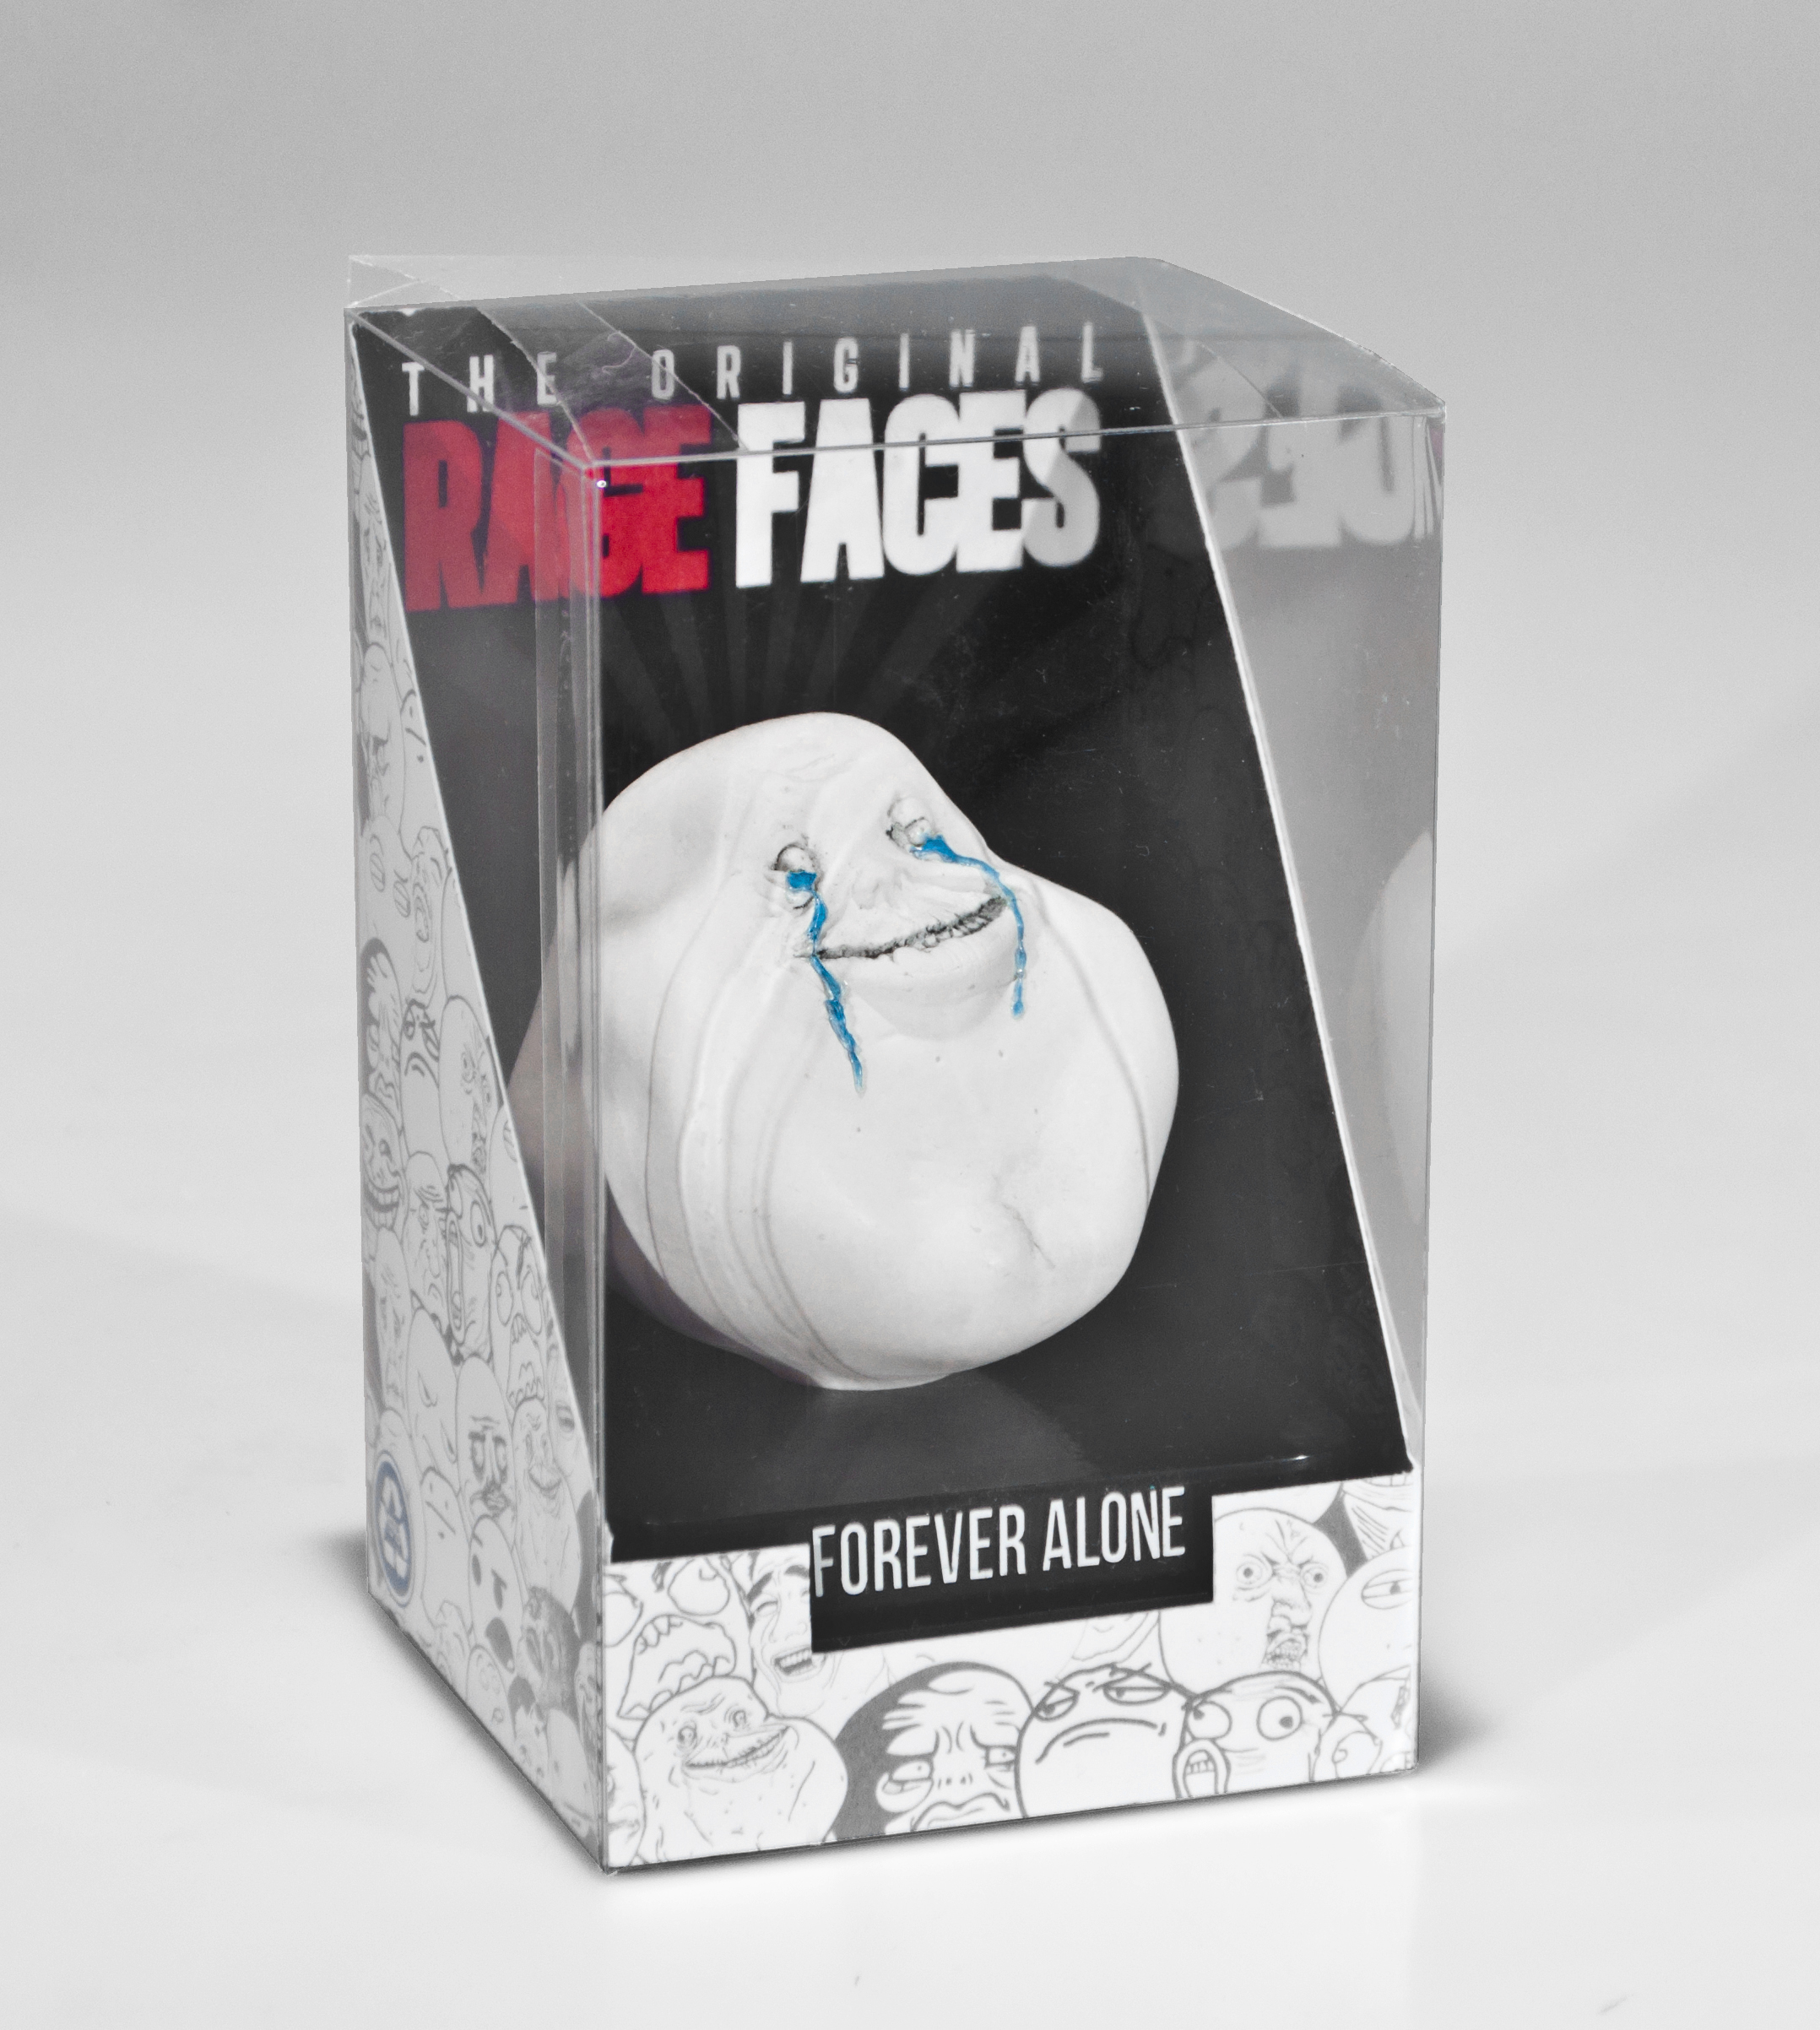 the original rage faces forever alone limited edition online